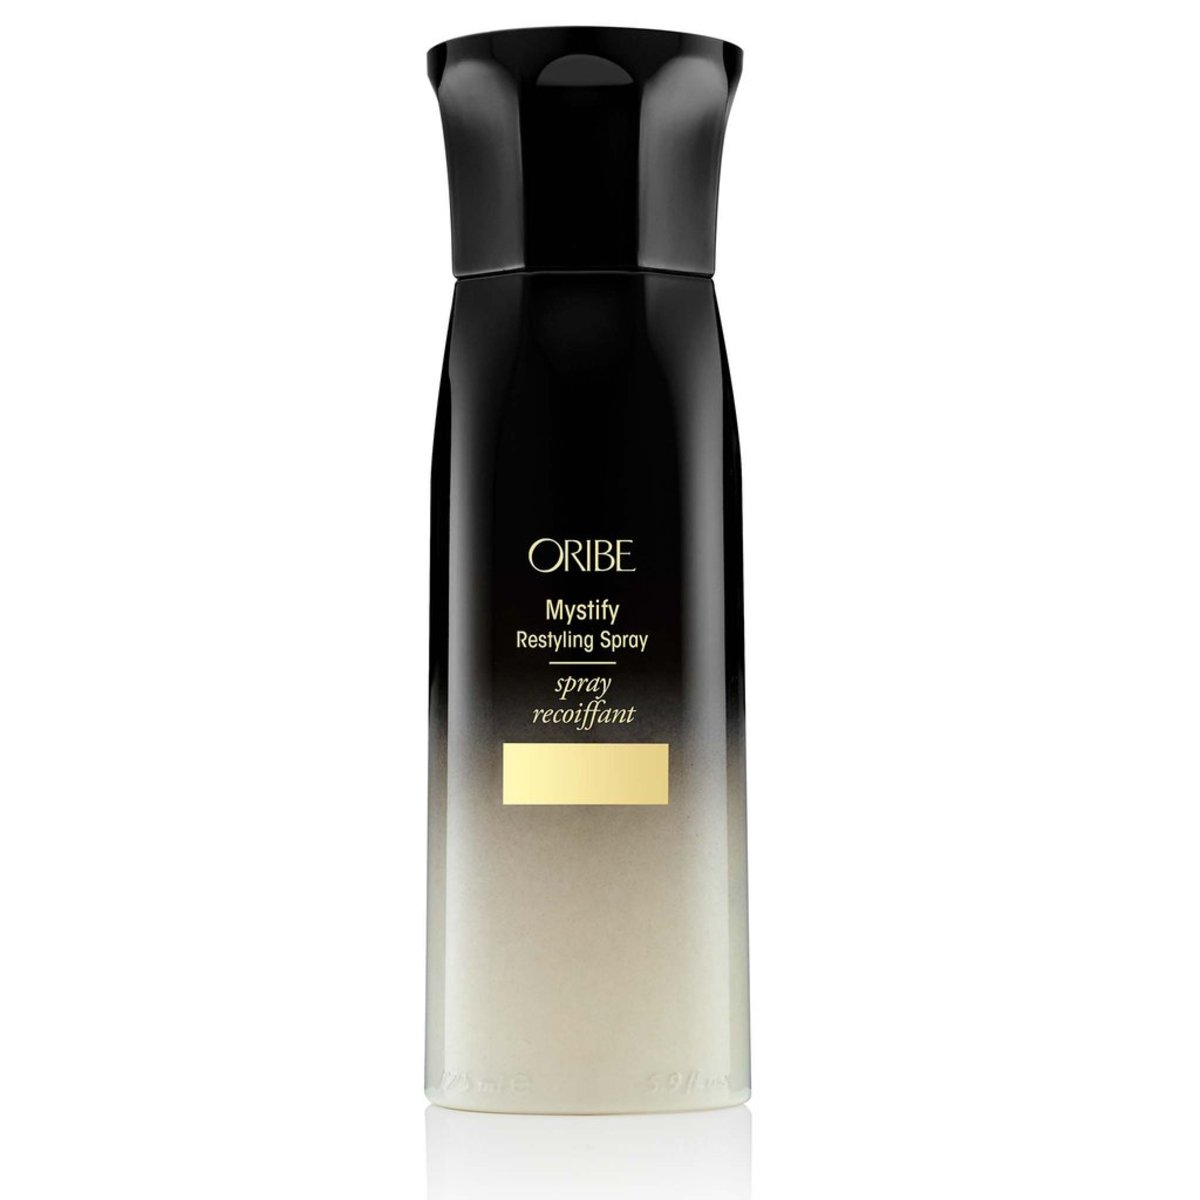 Oribe Mystify Restyling Spray, $44, available here.